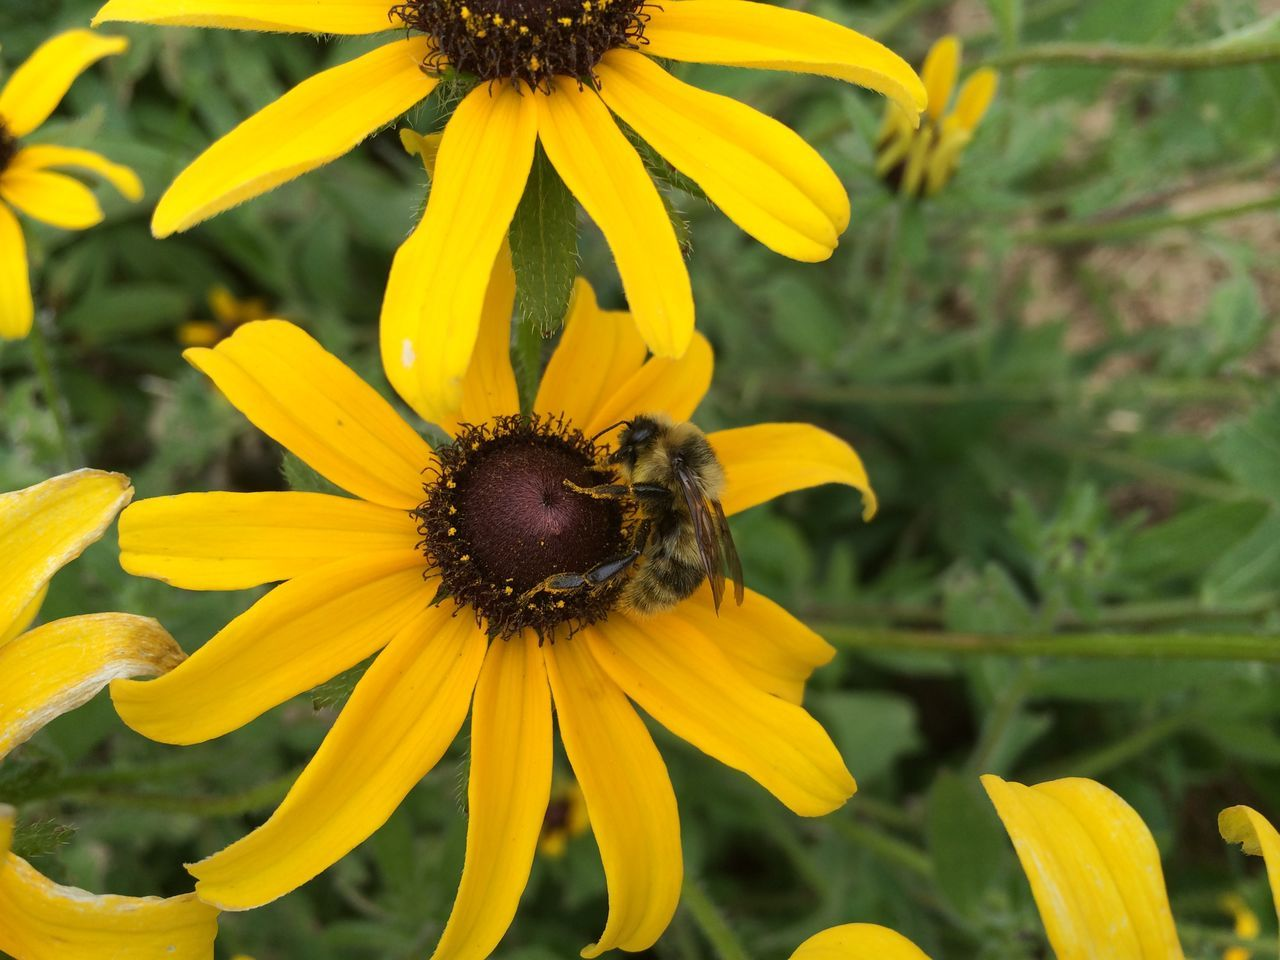 flower, yellow, fragility, petal, insect, one animal, bee, animal themes, nature, growth, animals in the wild, flower head, plant, focus on foreground, outdoors, no people, beauty in nature, day, freshness, animal wildlife, pollination, close-up, blooming, black-eyed susan